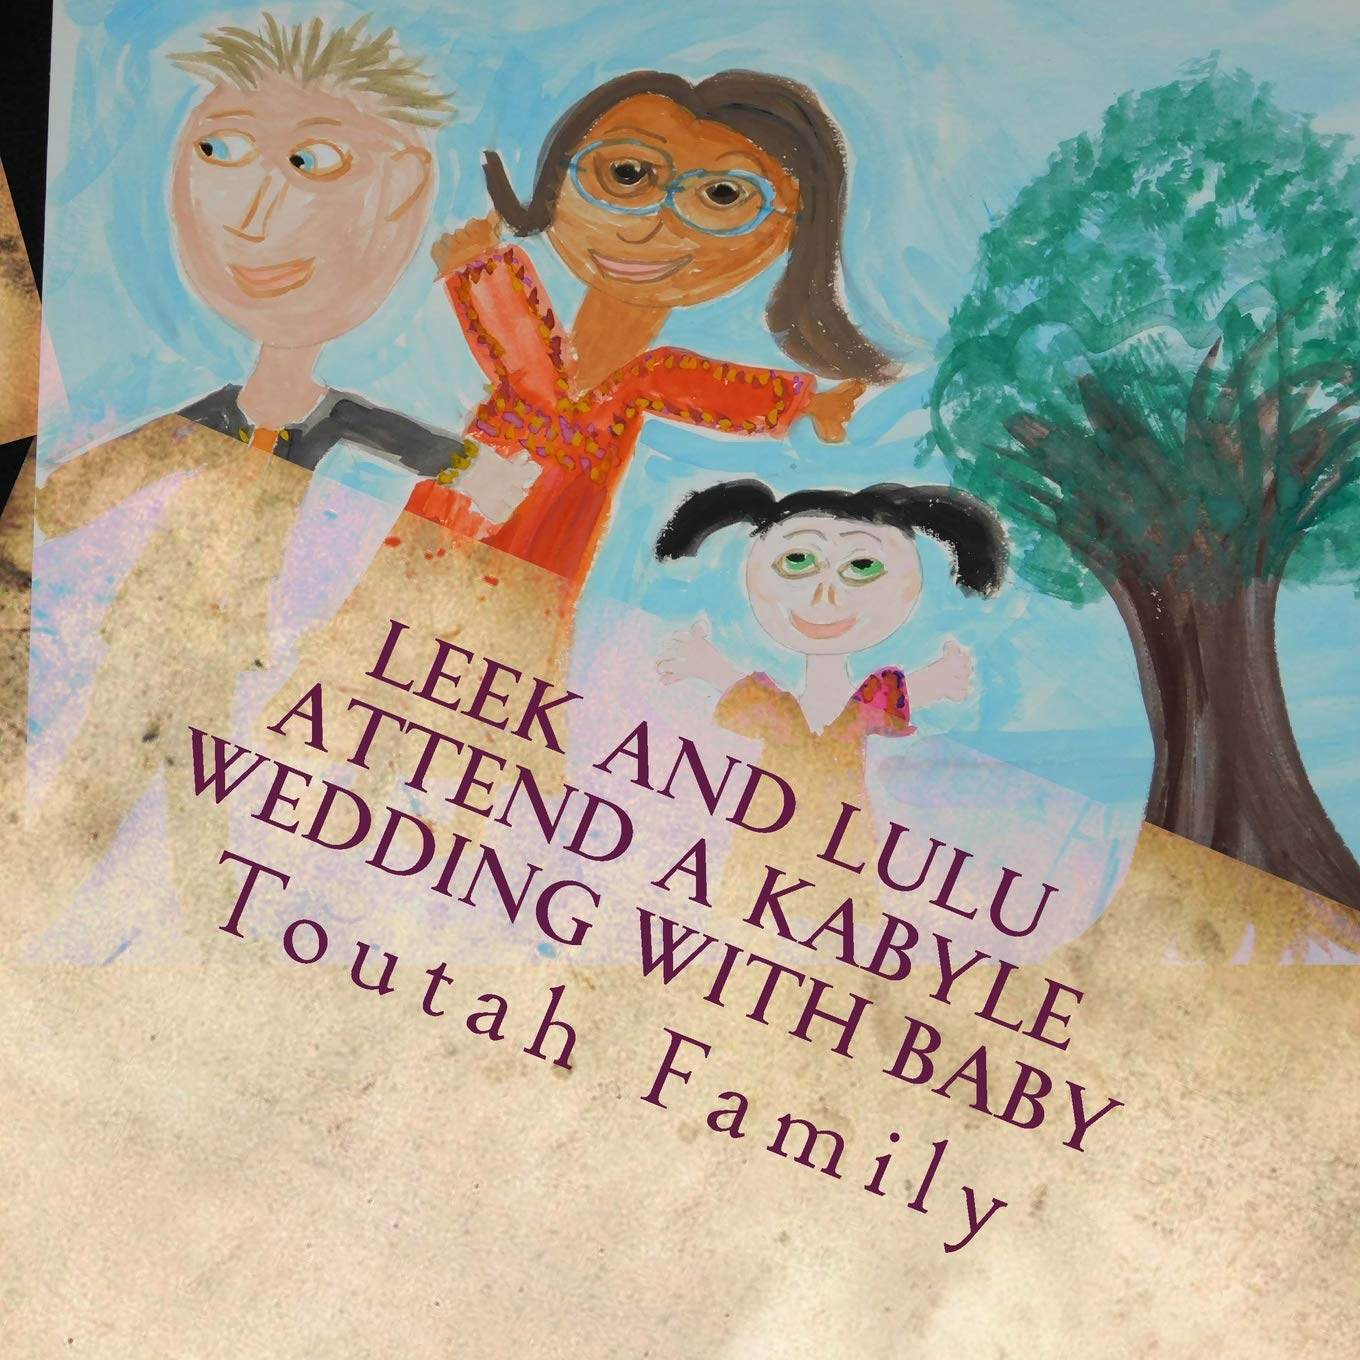 Download Leek and Lulu Attend a Kabyle Wedding with Baby pdf epub